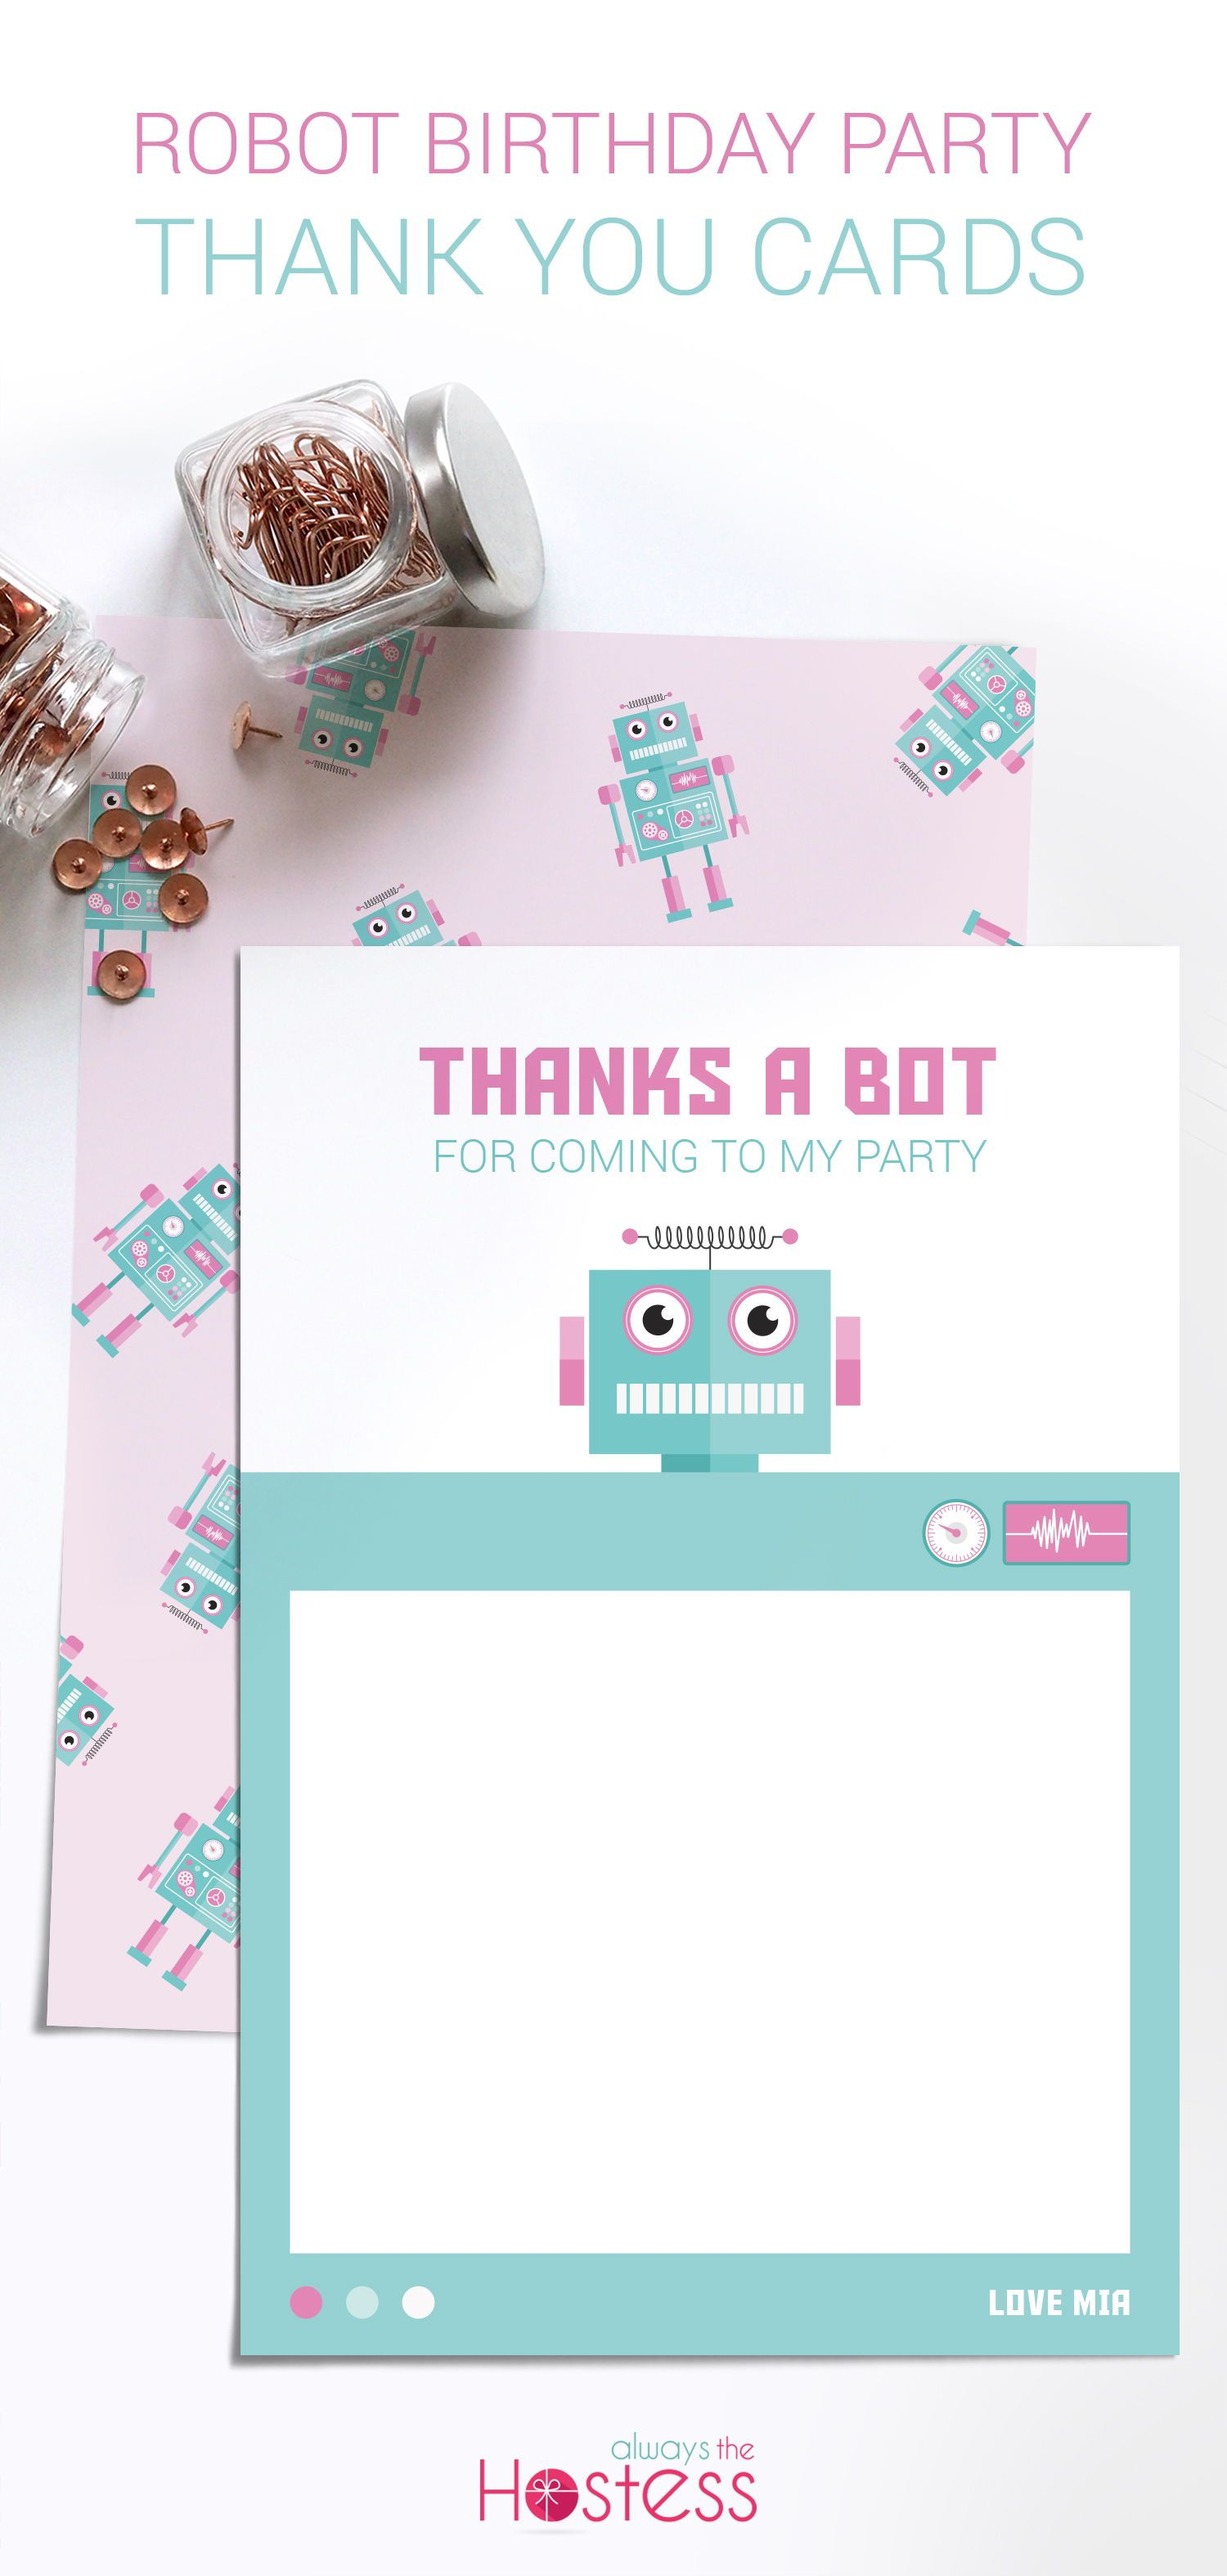 File Check Out Card girl robot thank you cards, kids birthday party thank you